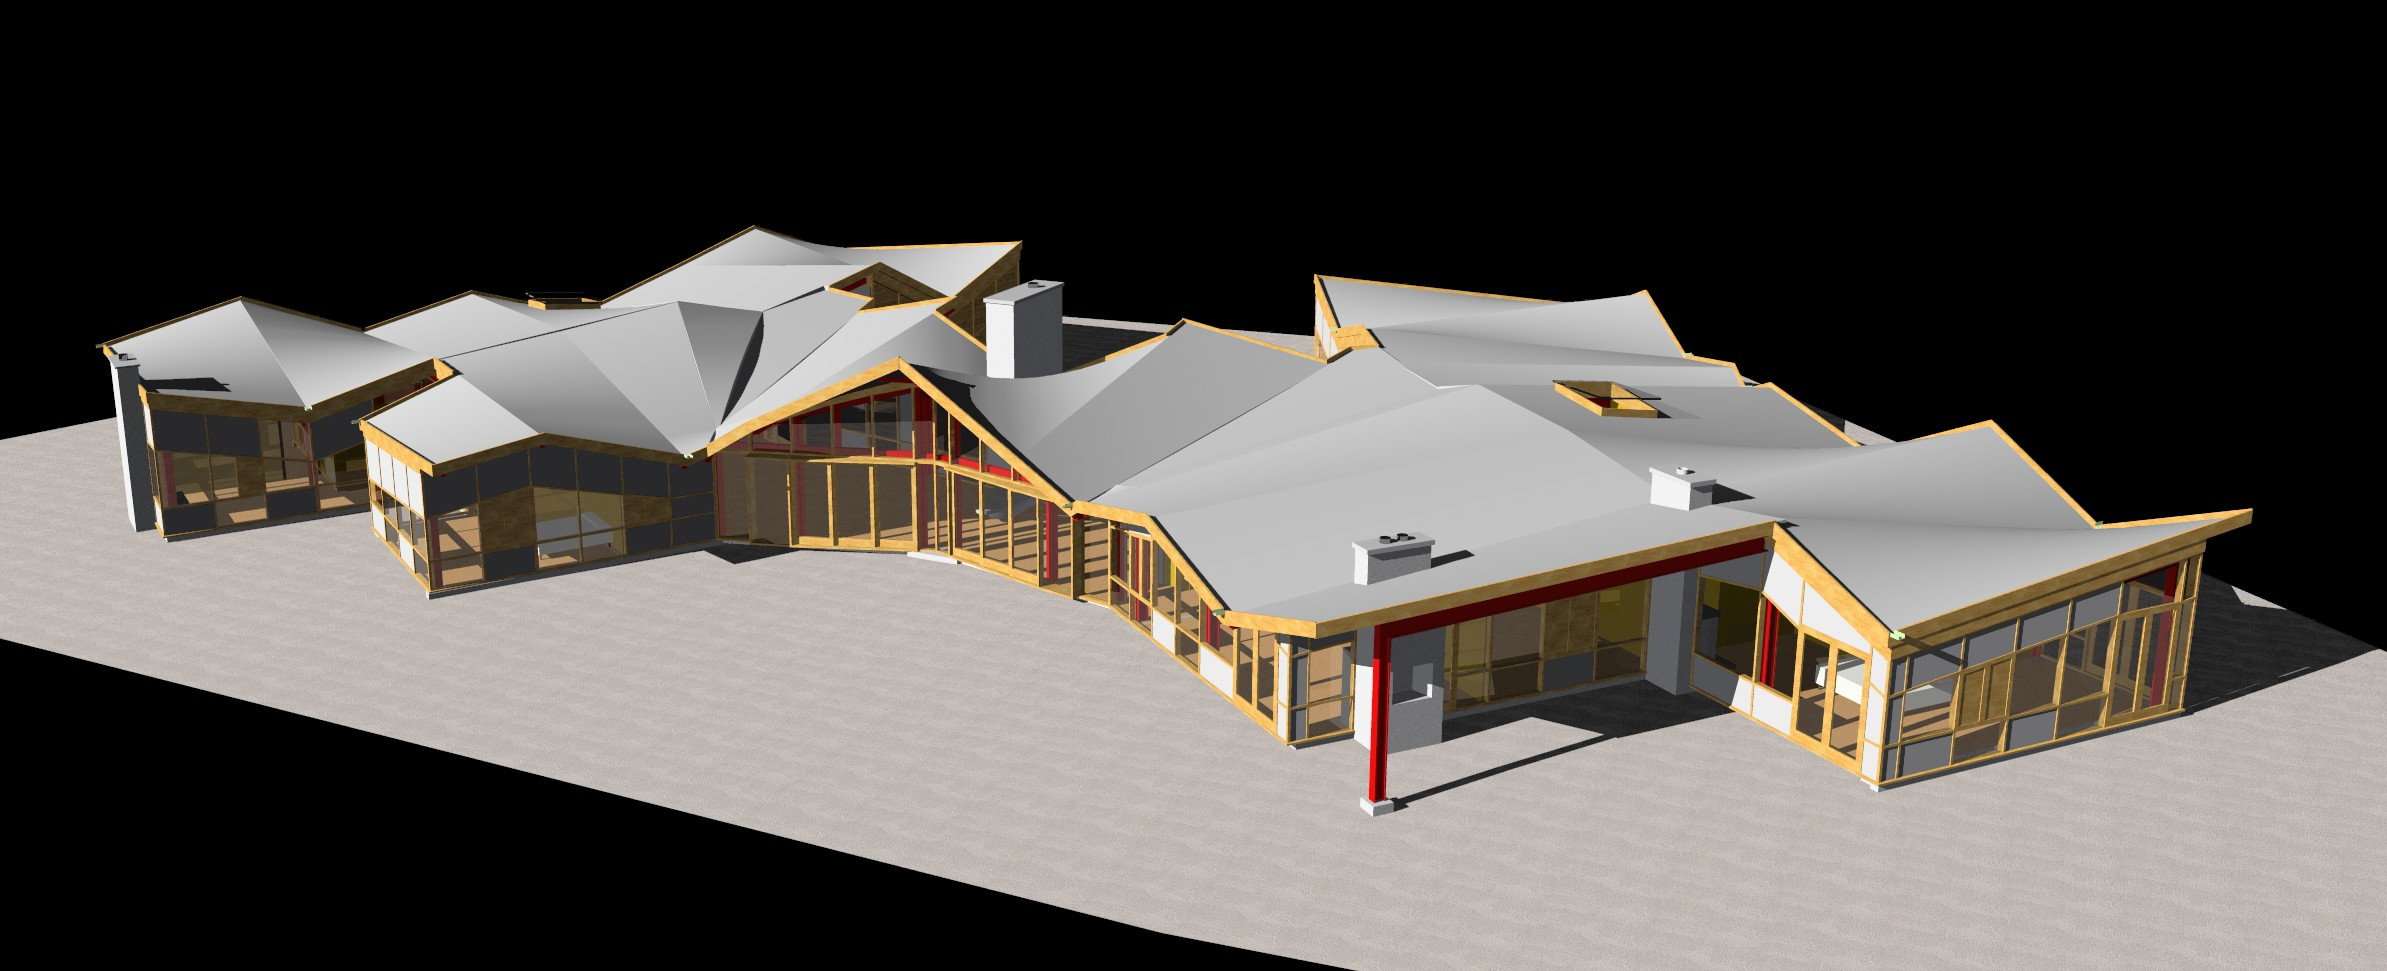 Gable Roof in Revit http://forums.autodesk.com/t5/Autodesk-Revit-Architecture/Is-Revit-ready-for-residential/td-p/1804242